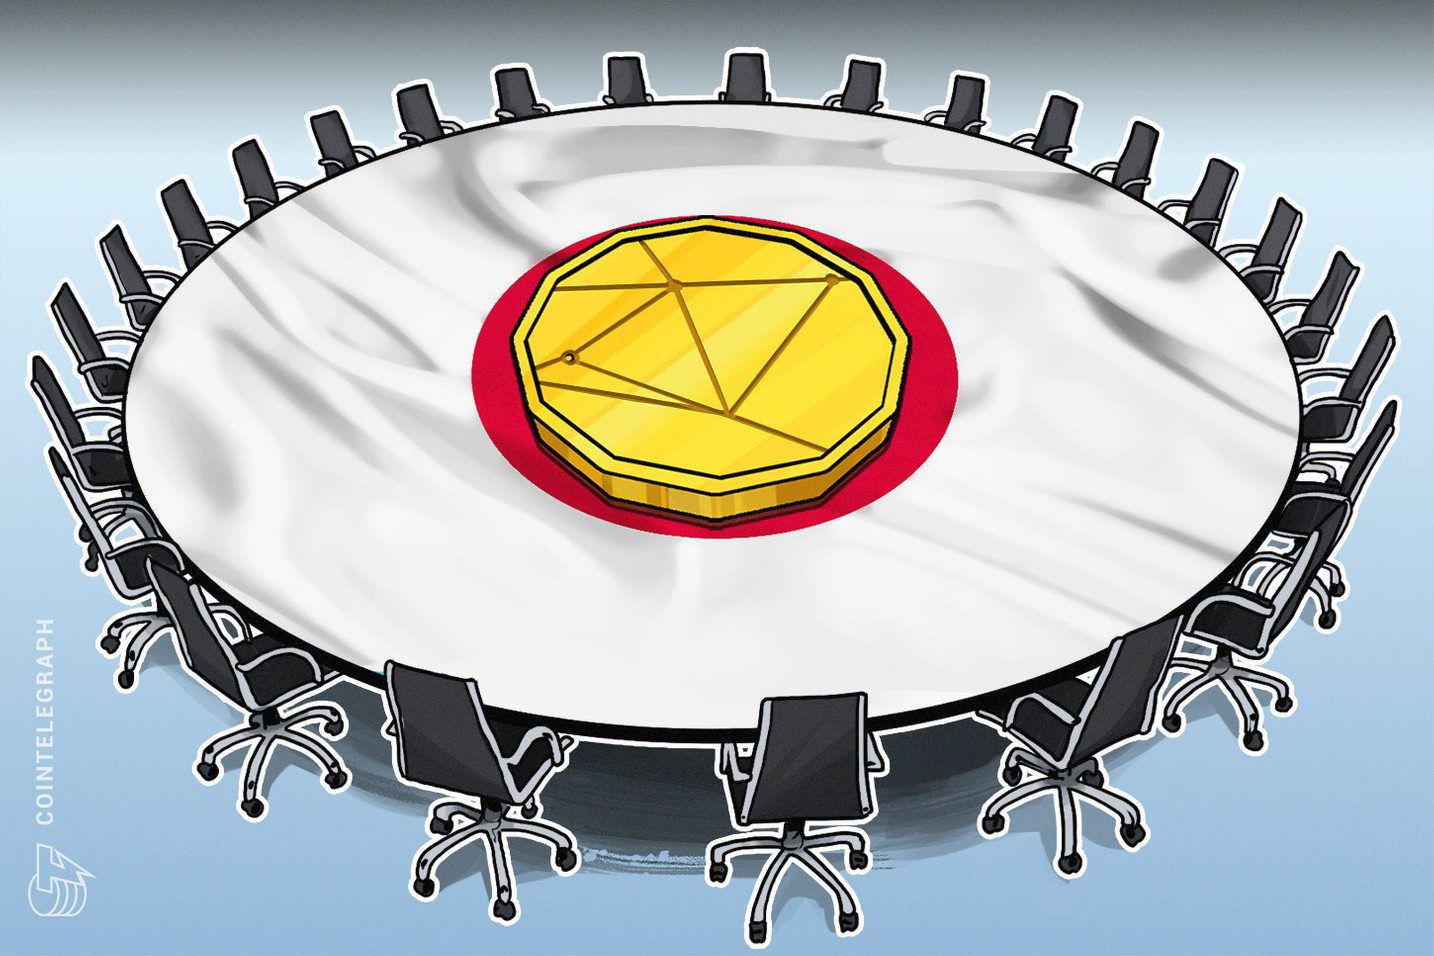 Japan's Self-Regulatory Crypto Exchange Body to Release Voluntary Rules, Report Says